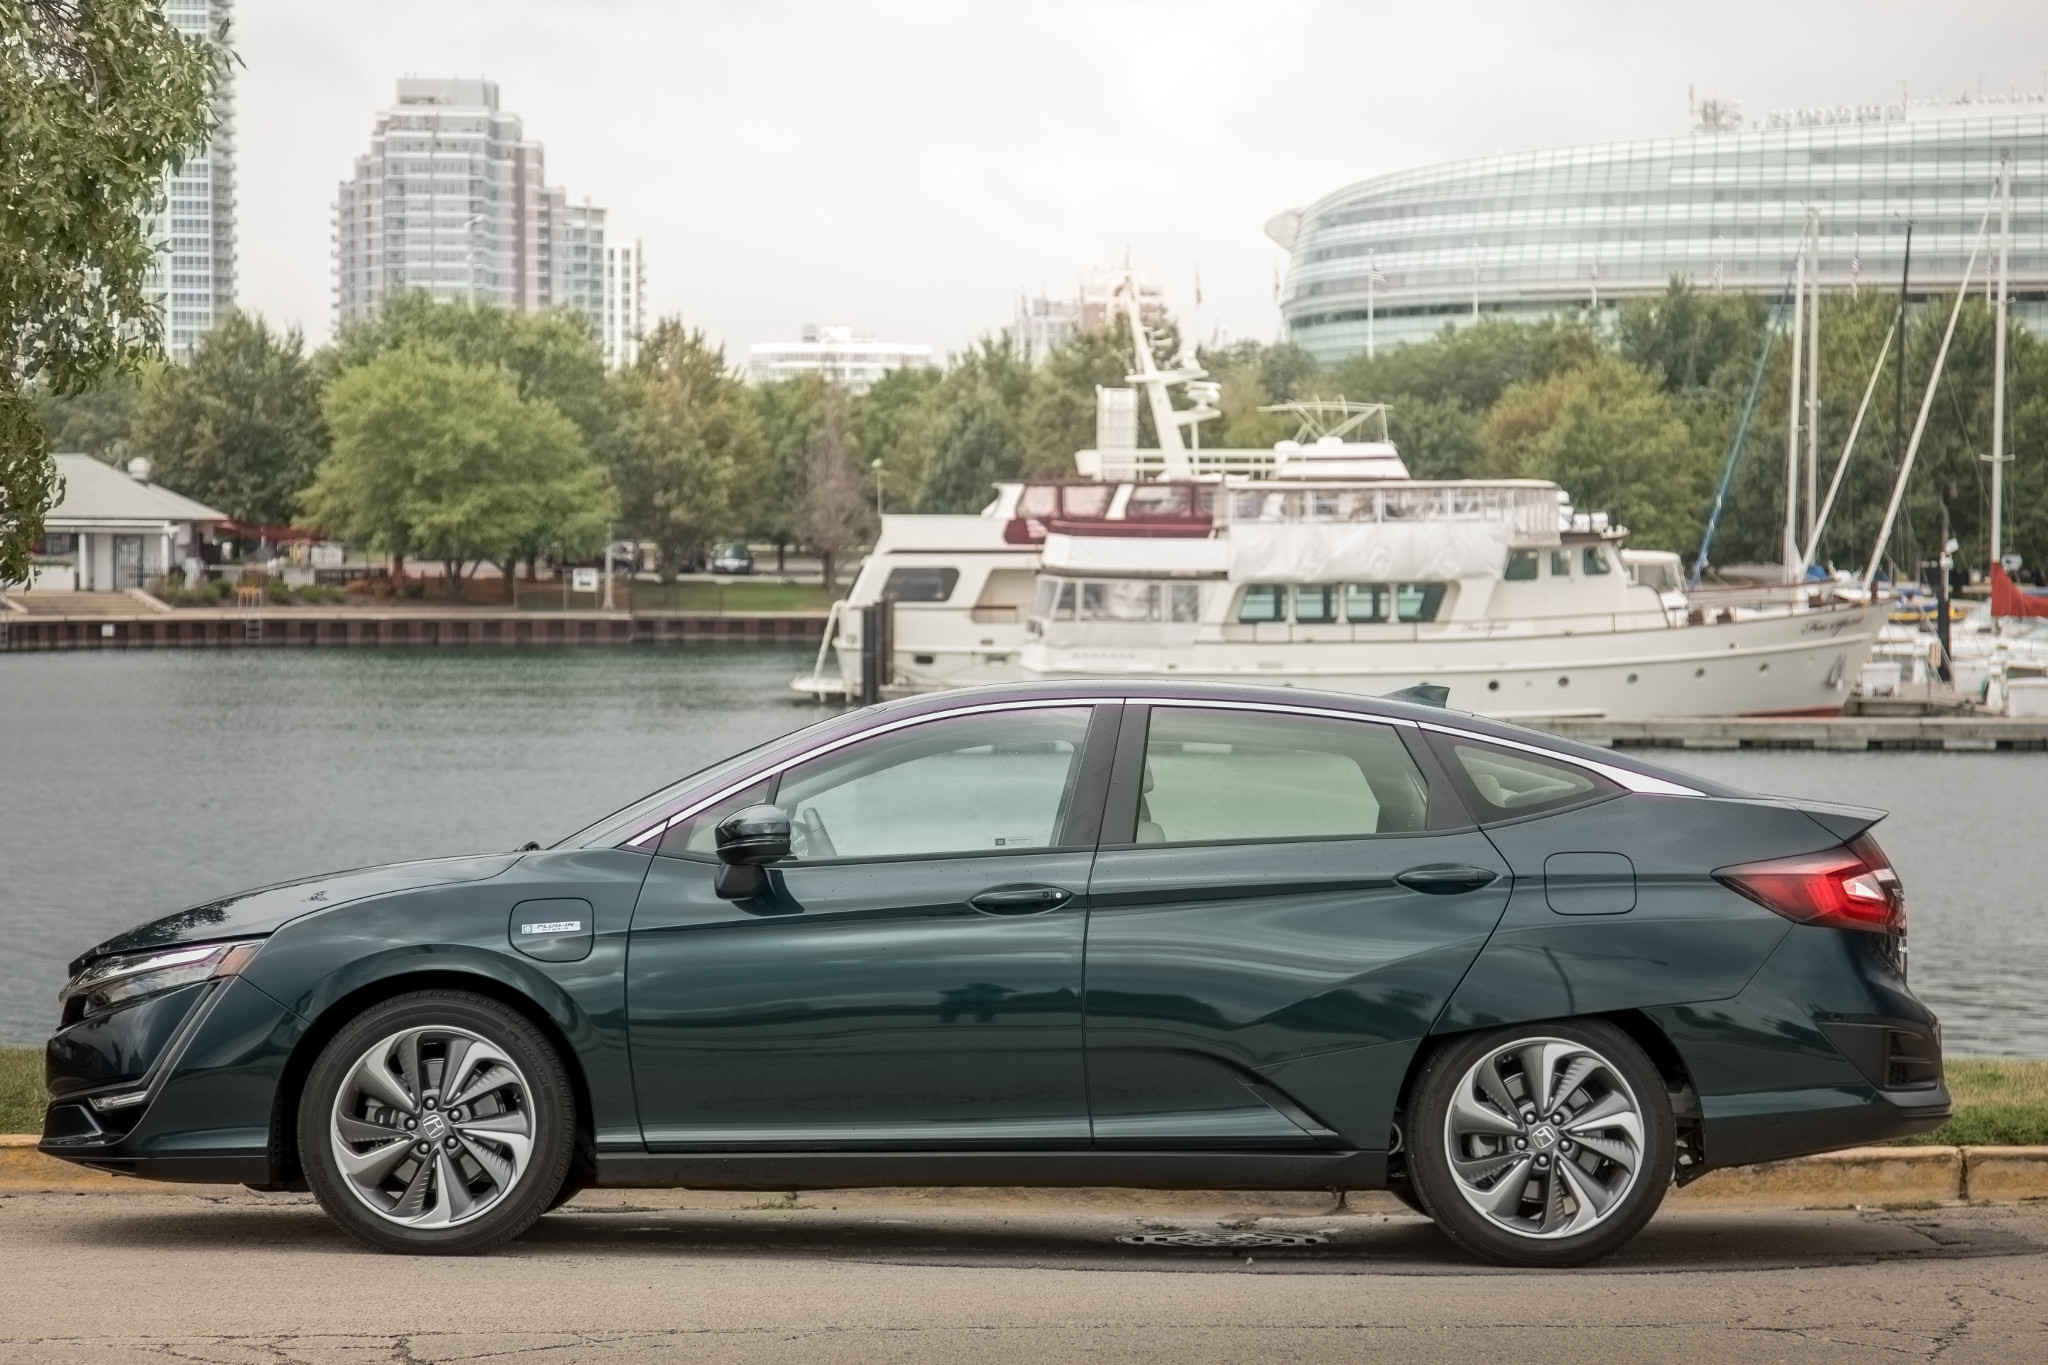 Top 10 Car Reviews of 2019: SUVs Aim to Please, But Honda Clarity Is Clear Fave